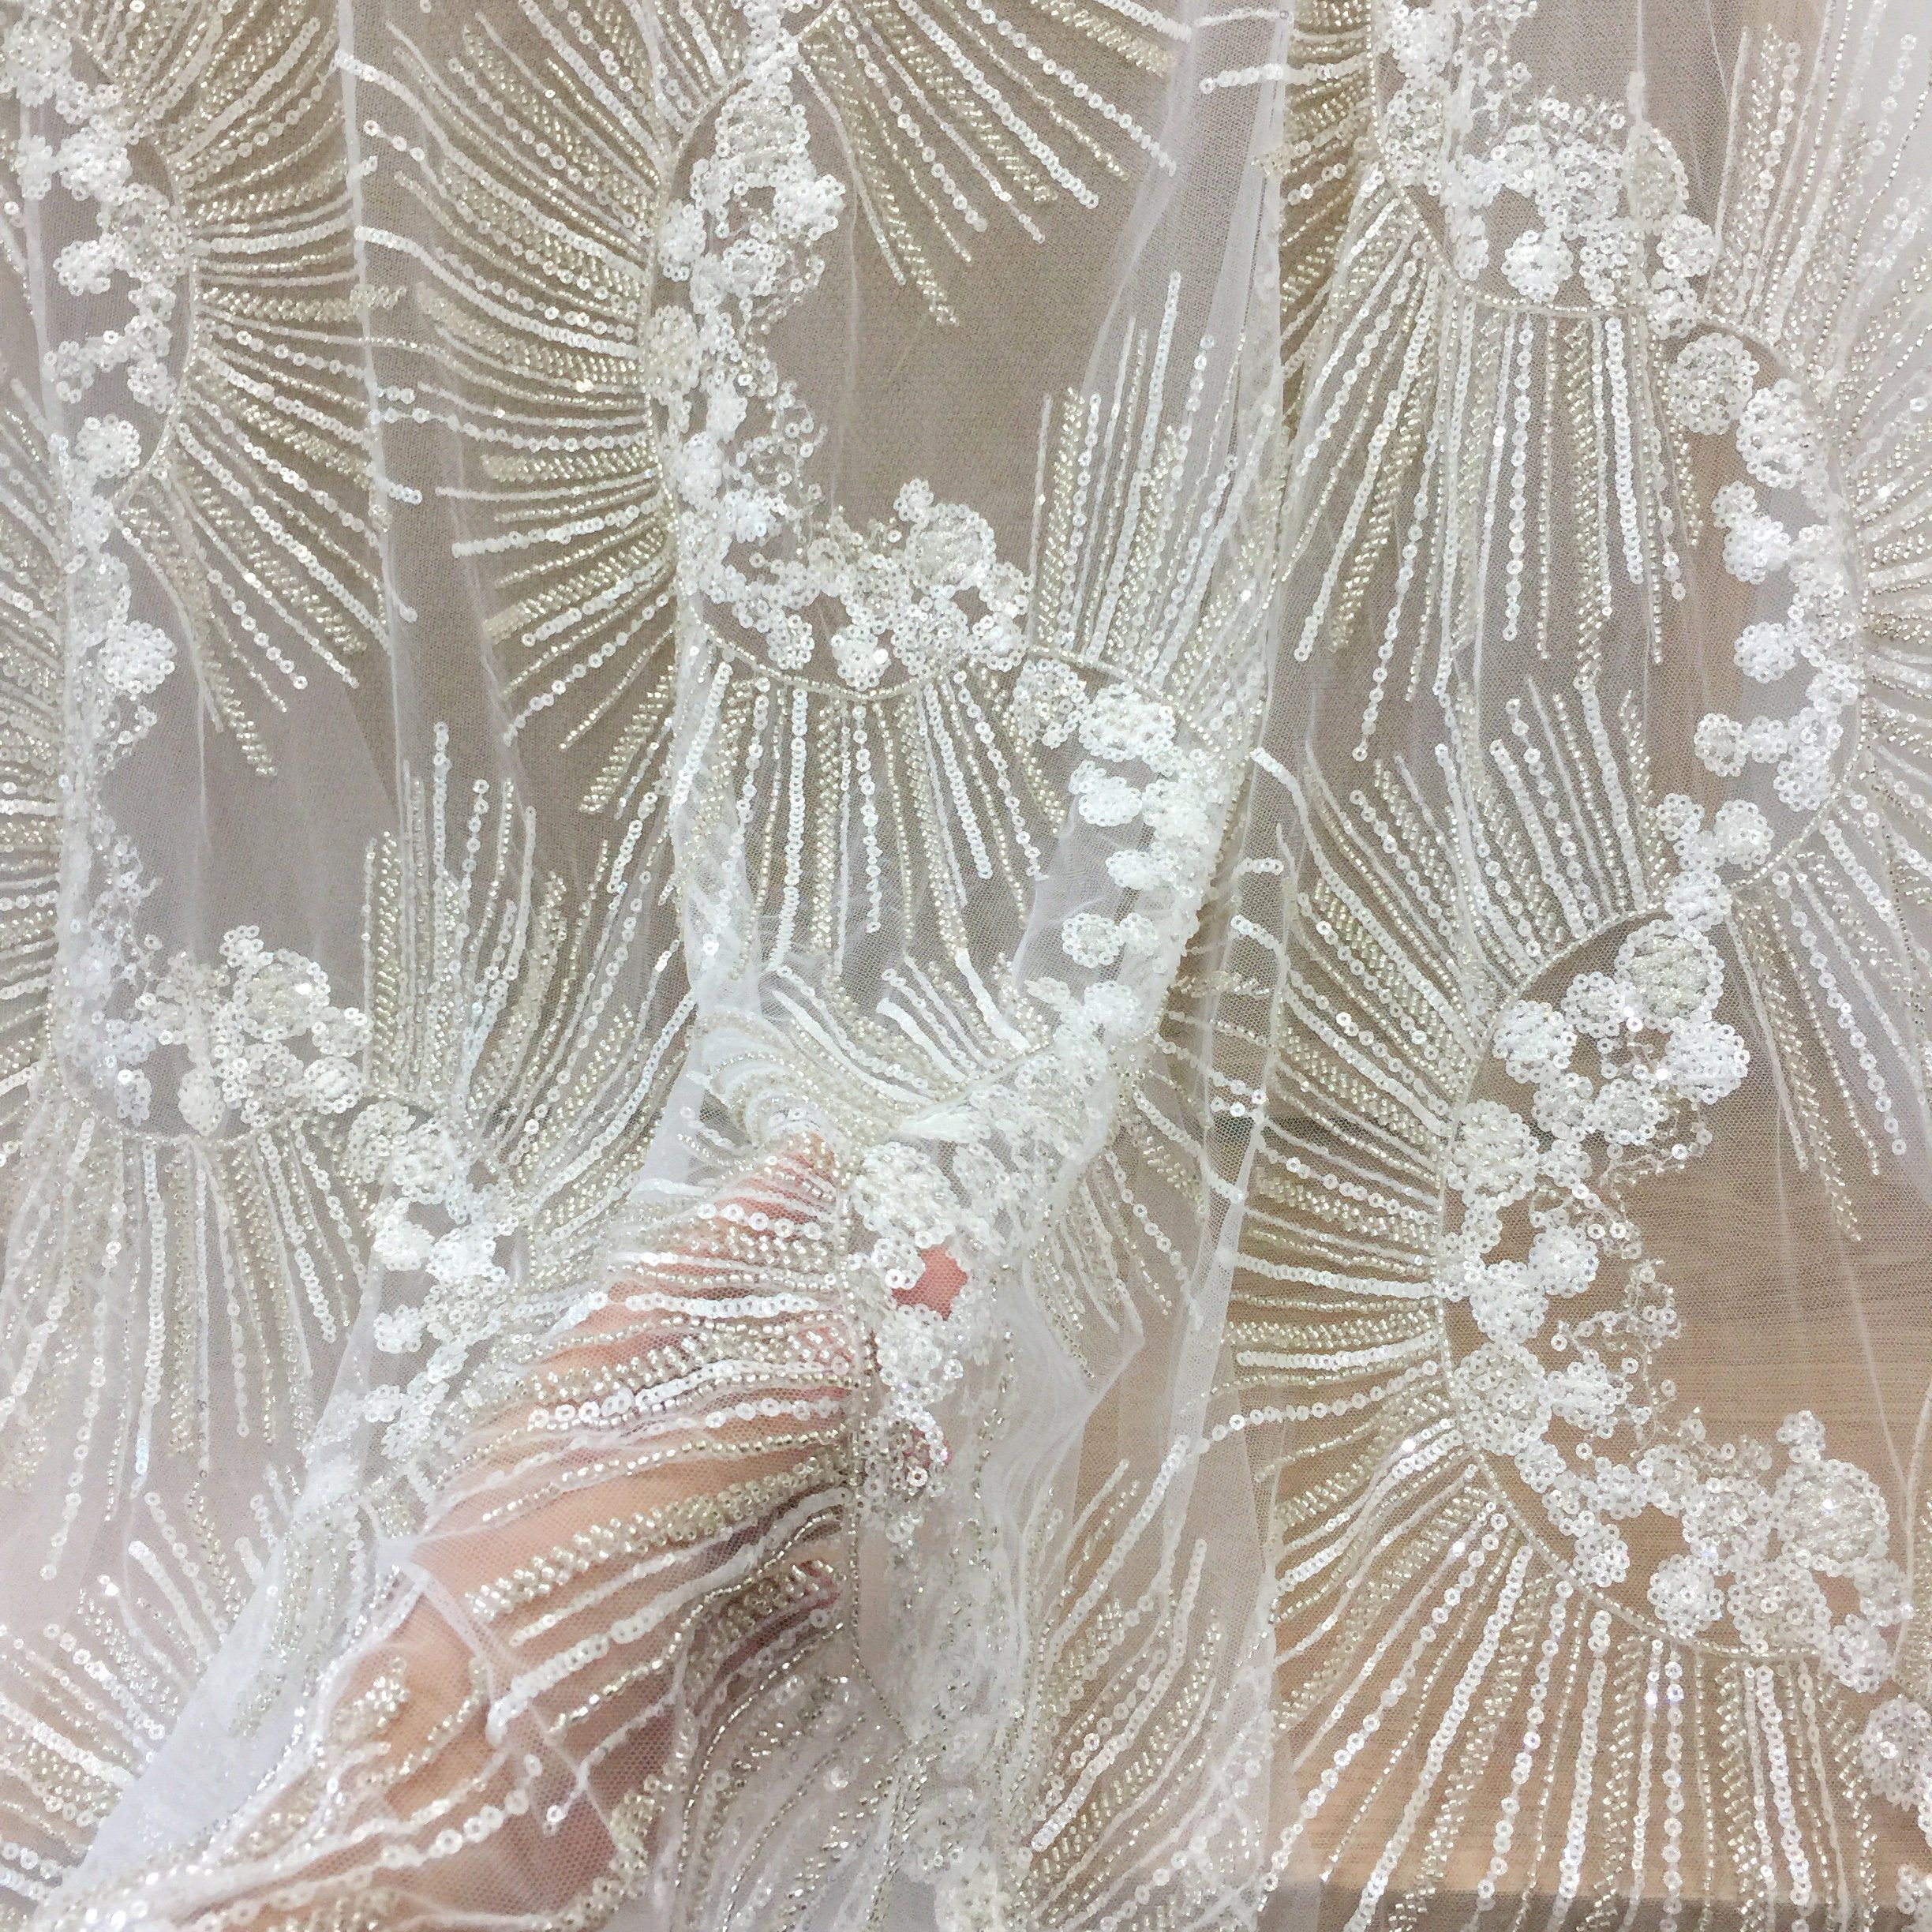 Haute Peach Floral Embroidered Lace Embedded Stone High Fashion Fabric Sold By The Yard